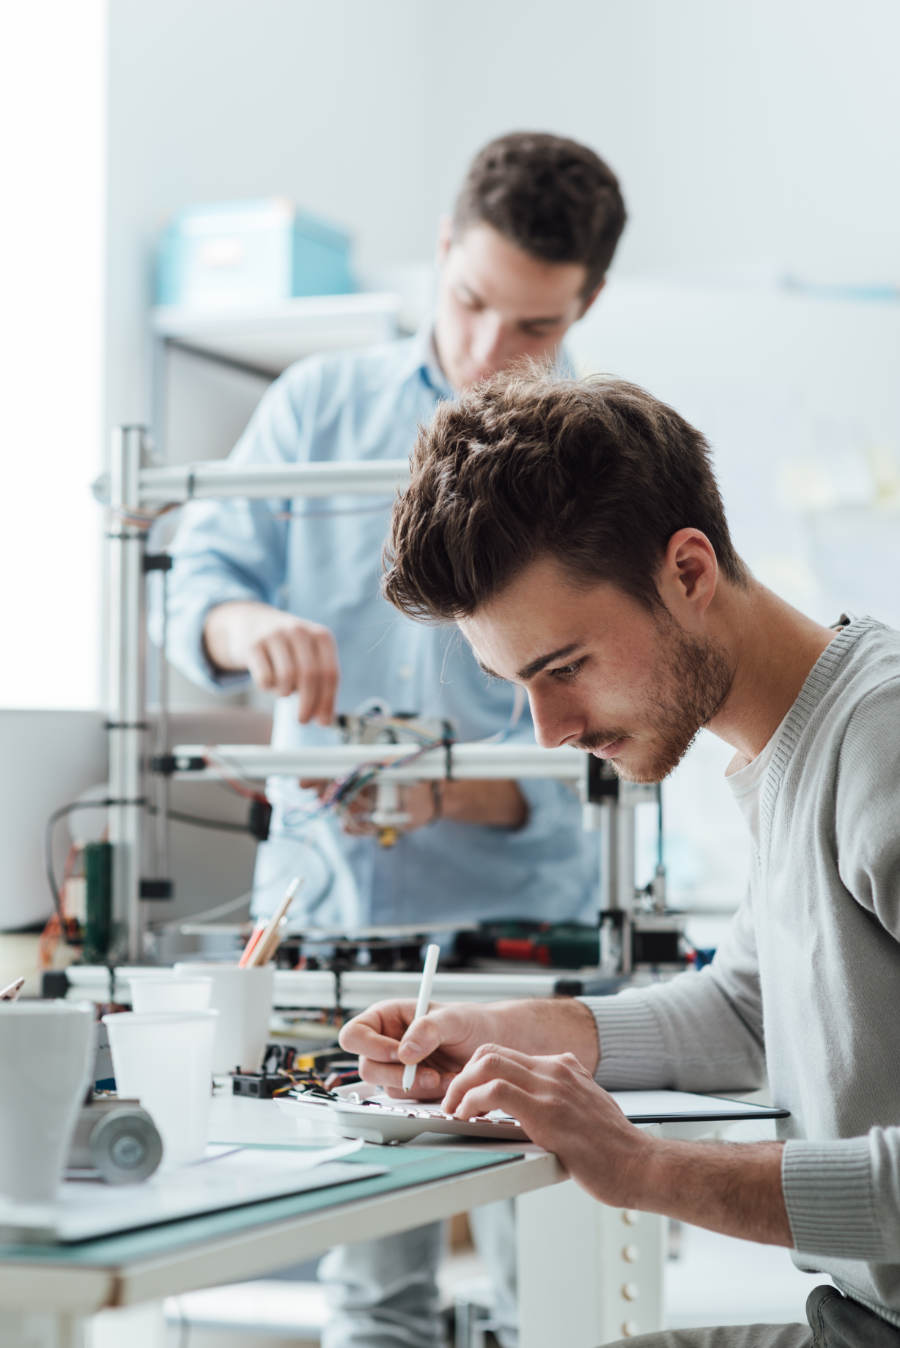 engineering-students-working-in-the-lab-PPFAGTH.jpg